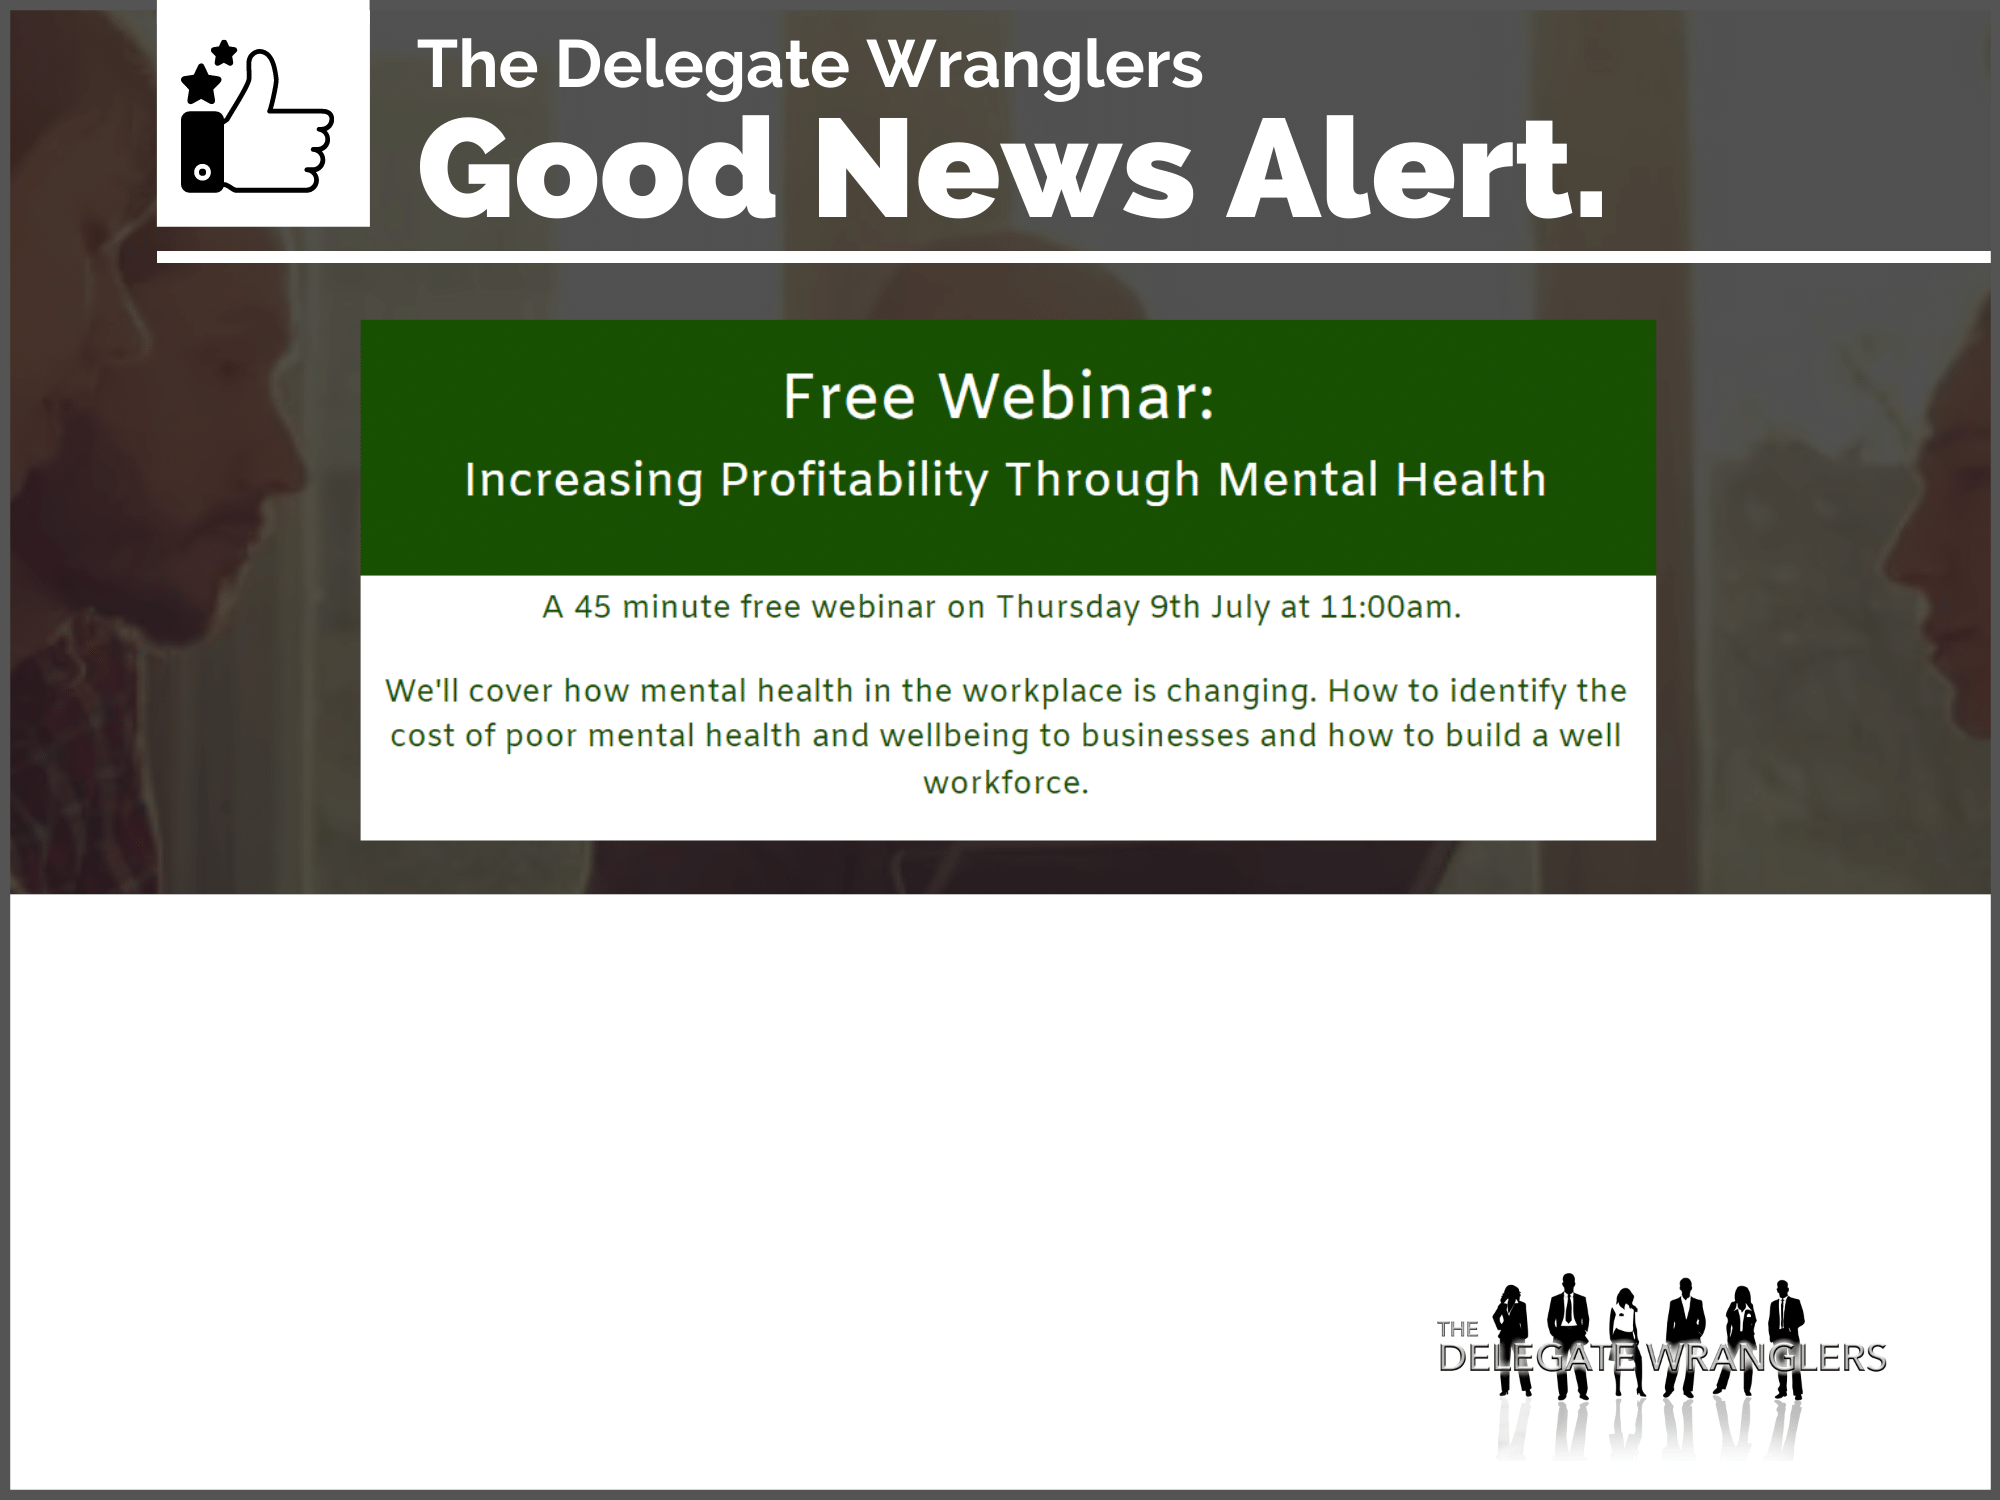 Stress Matters offers free 45 minute webinar for HR professionals and senior leaders